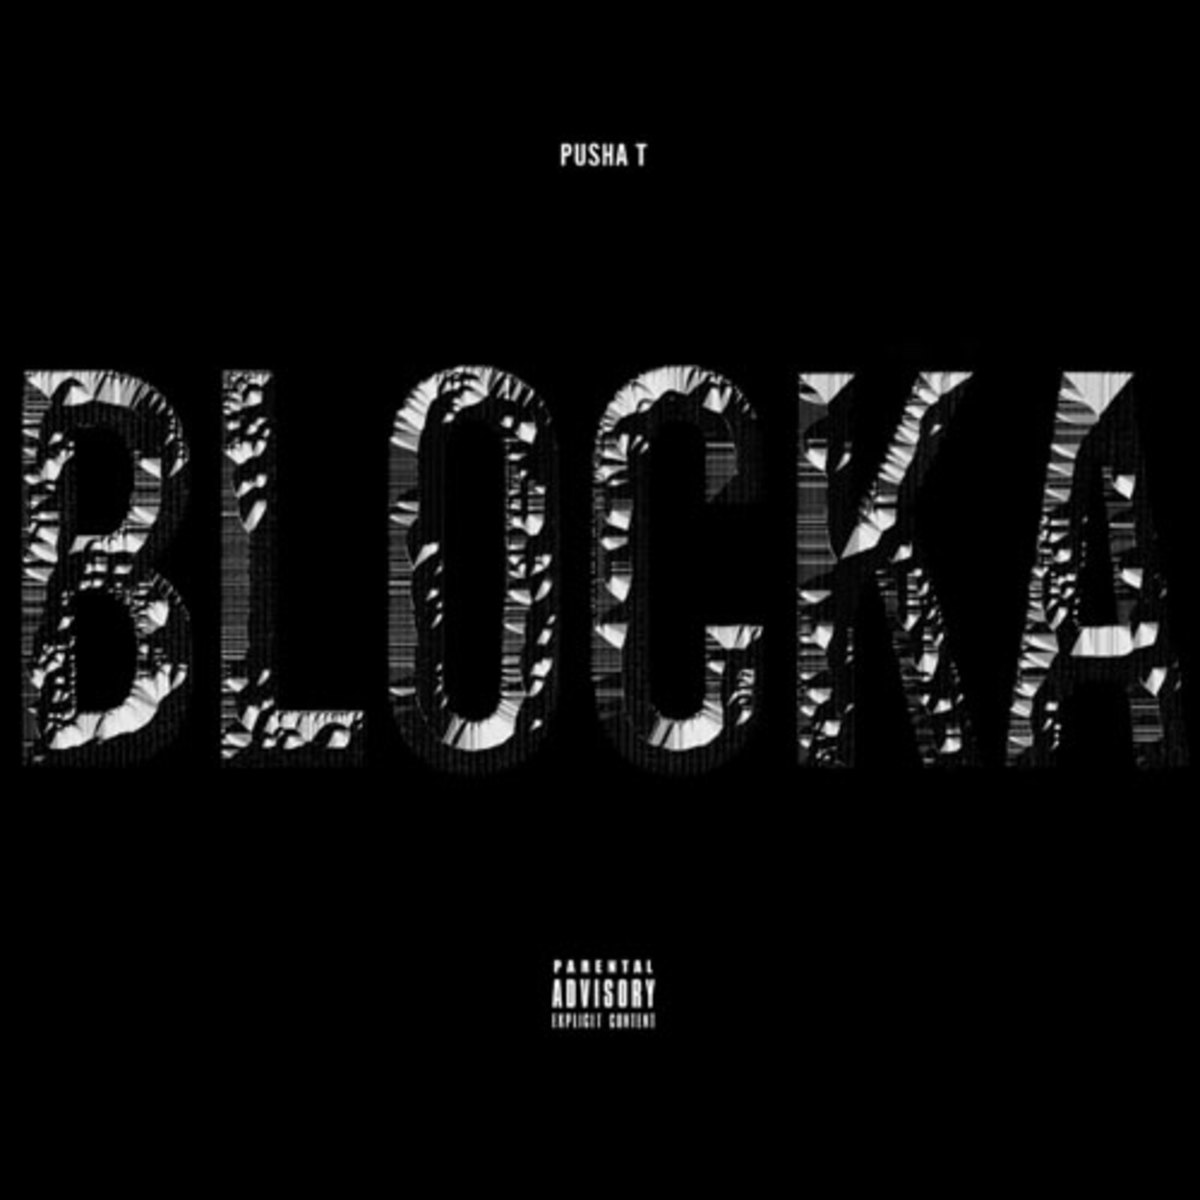 Pusha t blocka mp3 download zippy.